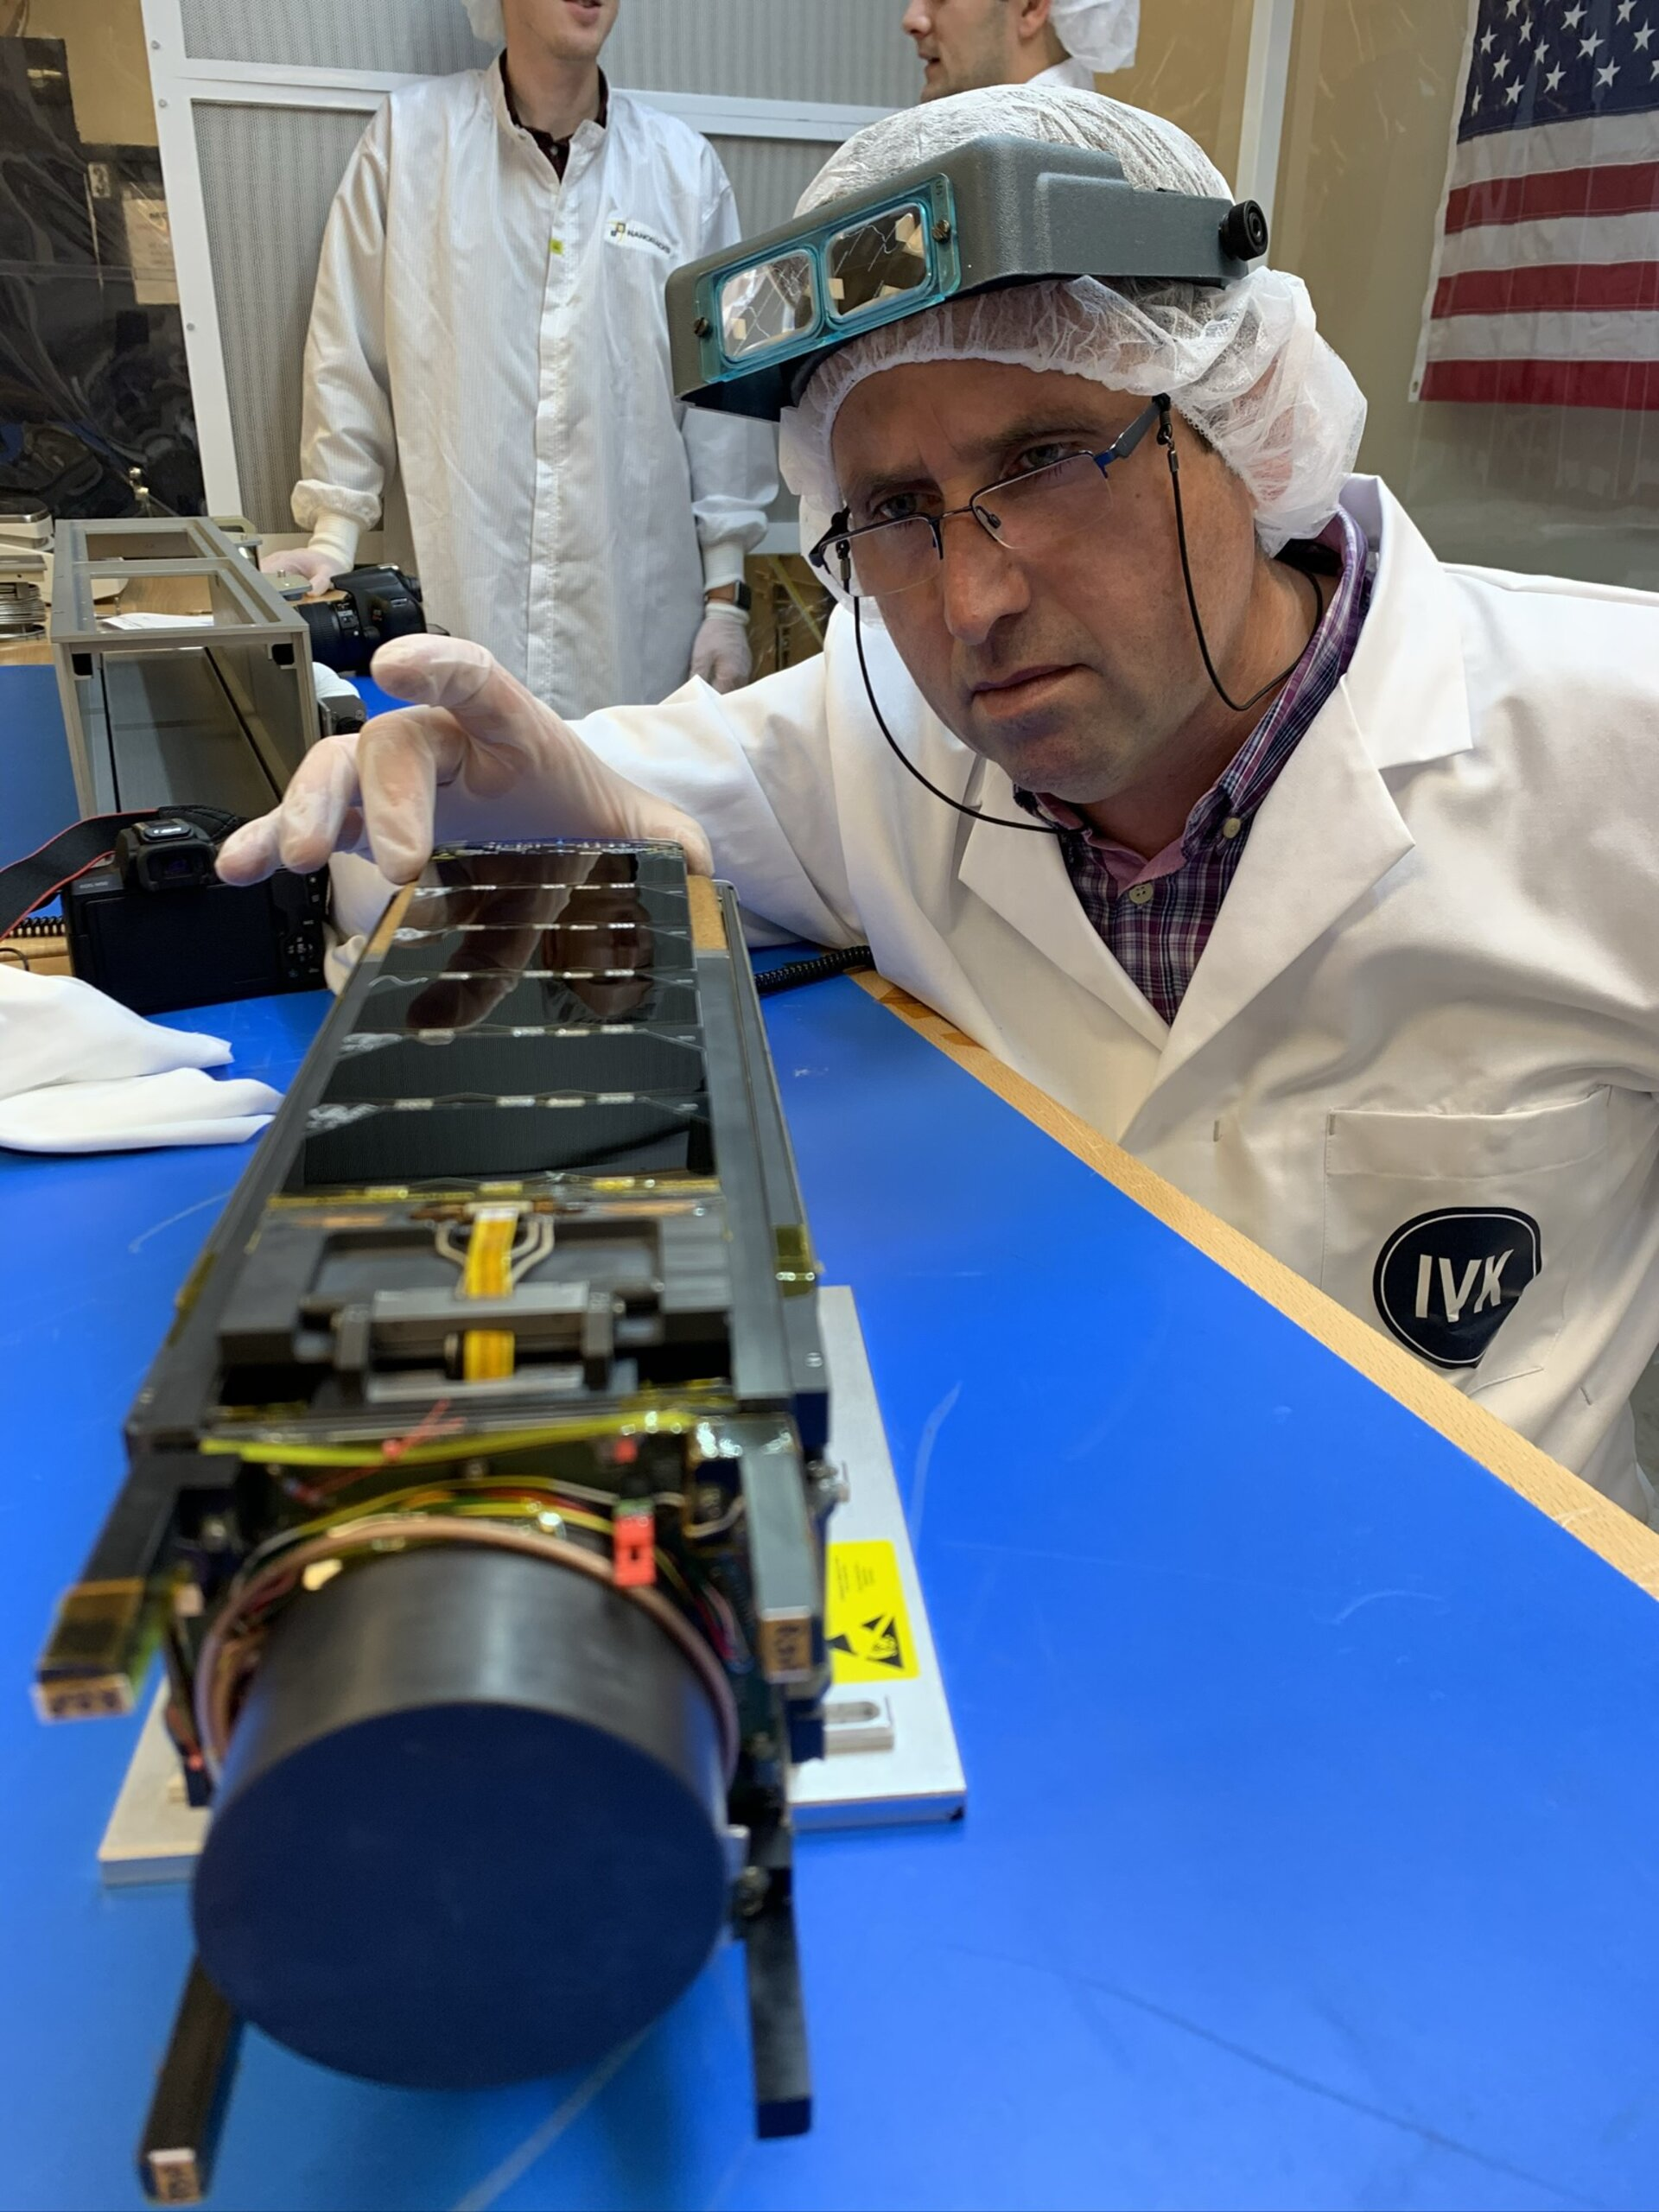 Qarman prepared for launch to ISS